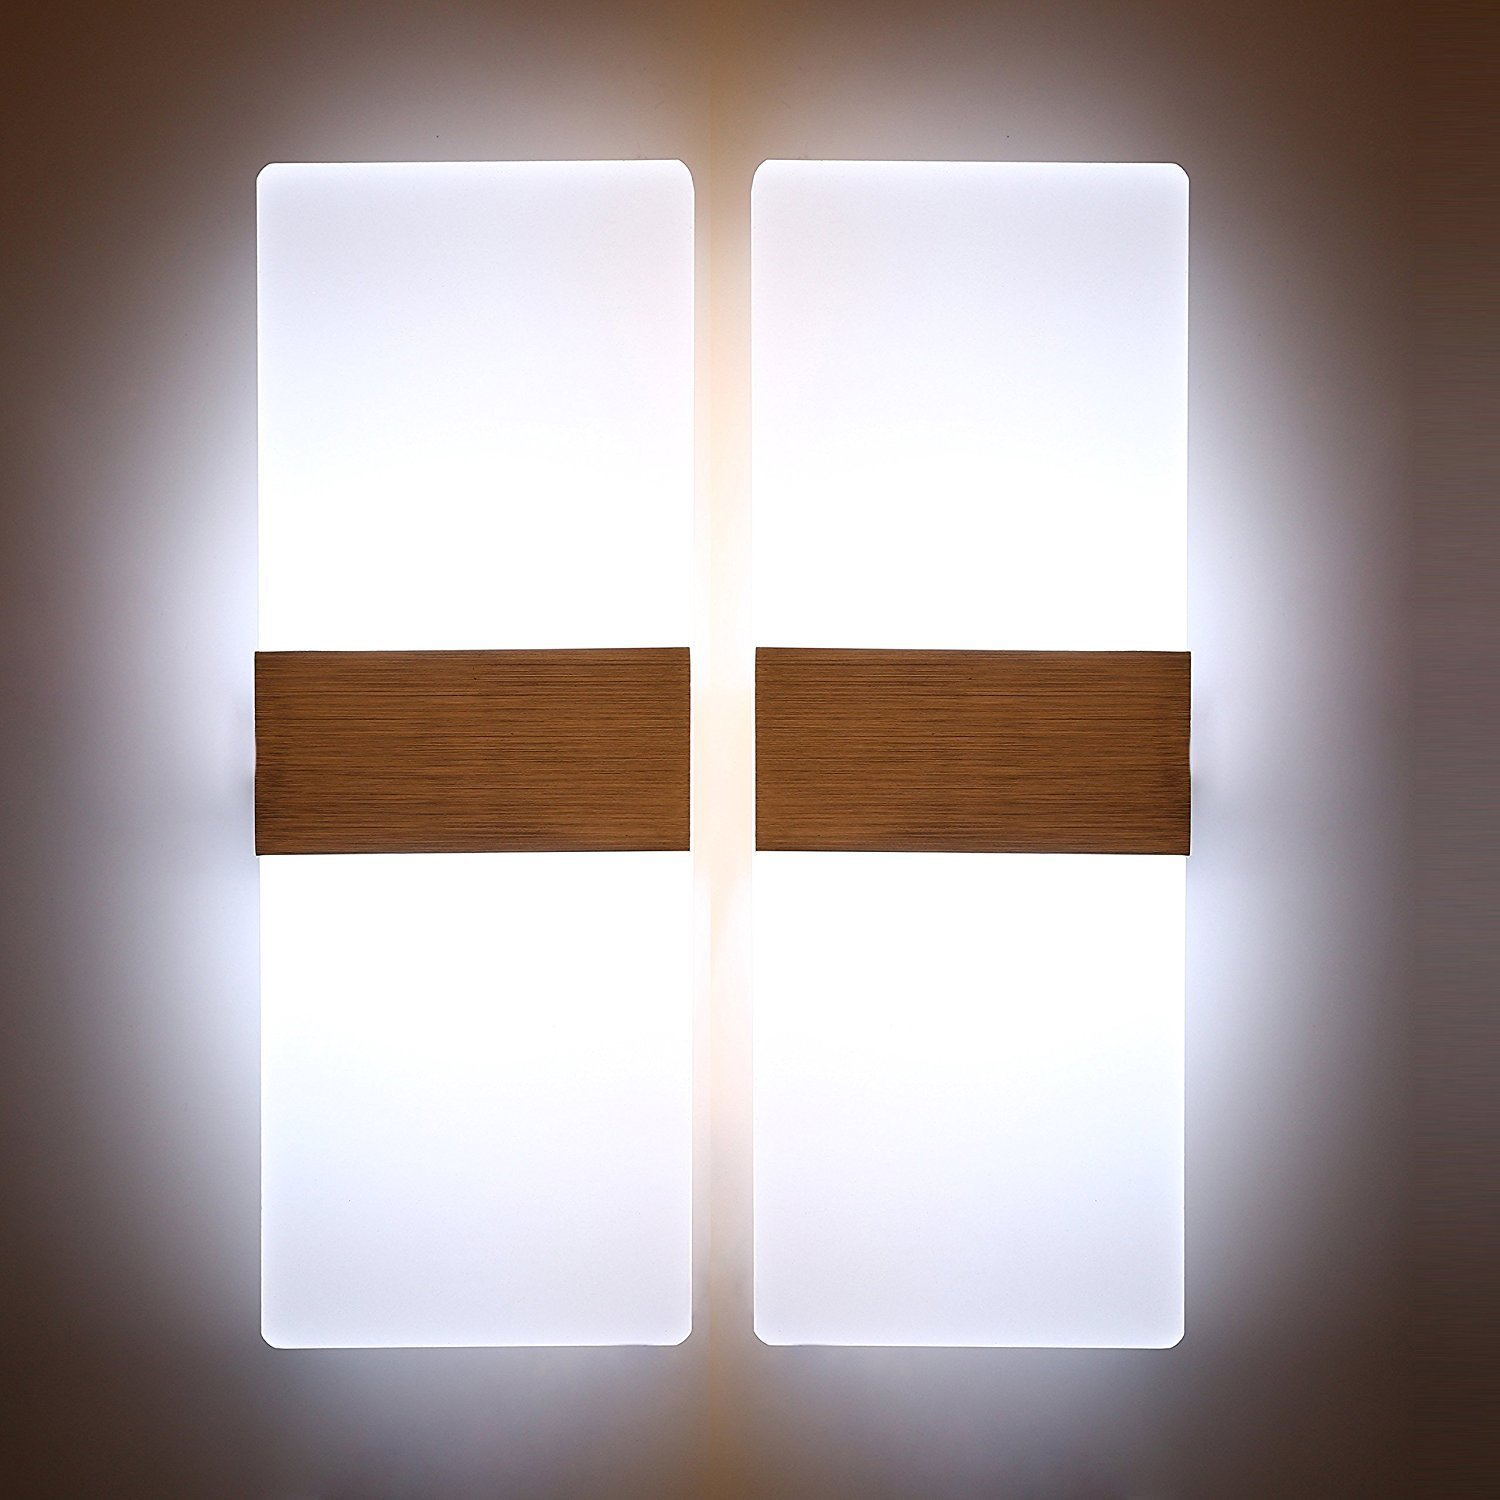 Glighone 2-Pack Up and Down Wall Lights Modern Wall Light Acrylic Wall Sconce for Dinning Room Living Room Corridor Hallway 2*12W Cool White [Energy Class A++]